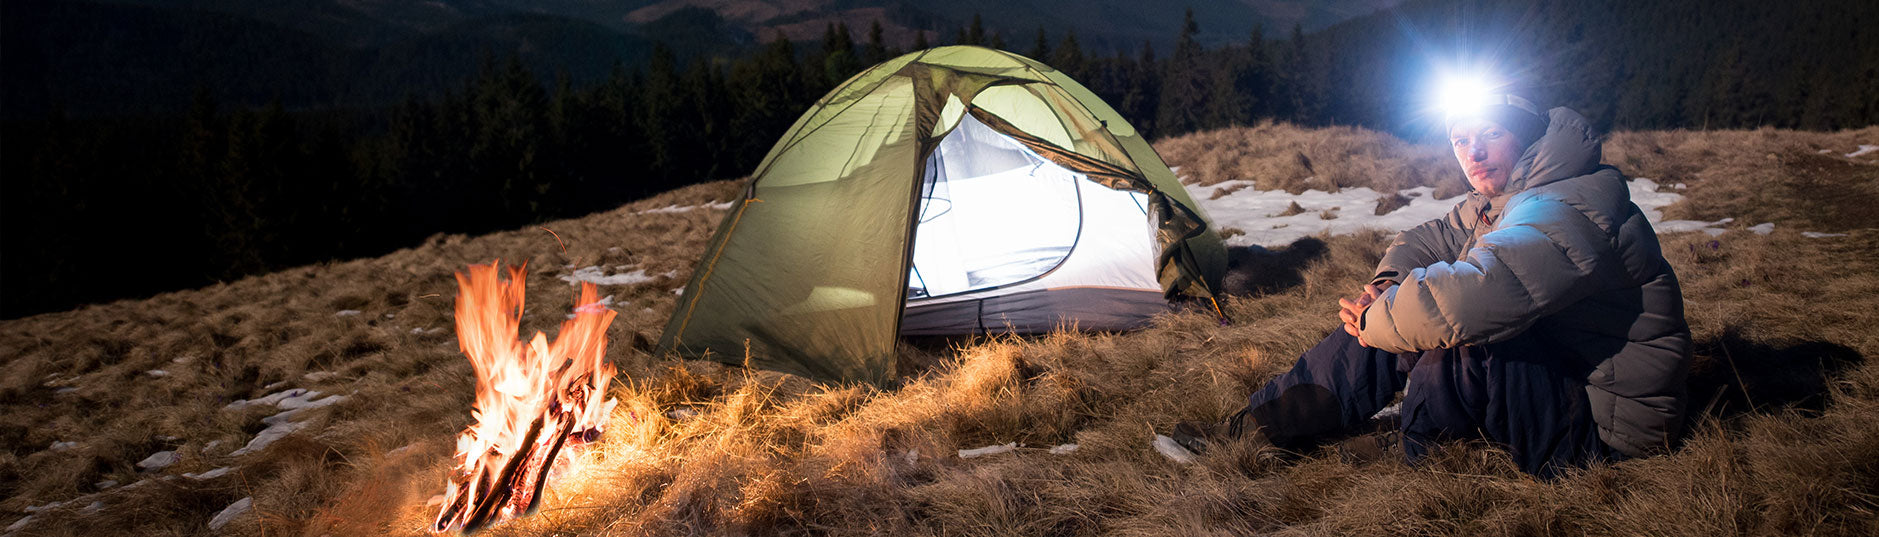 Campmaster Camping Equipment